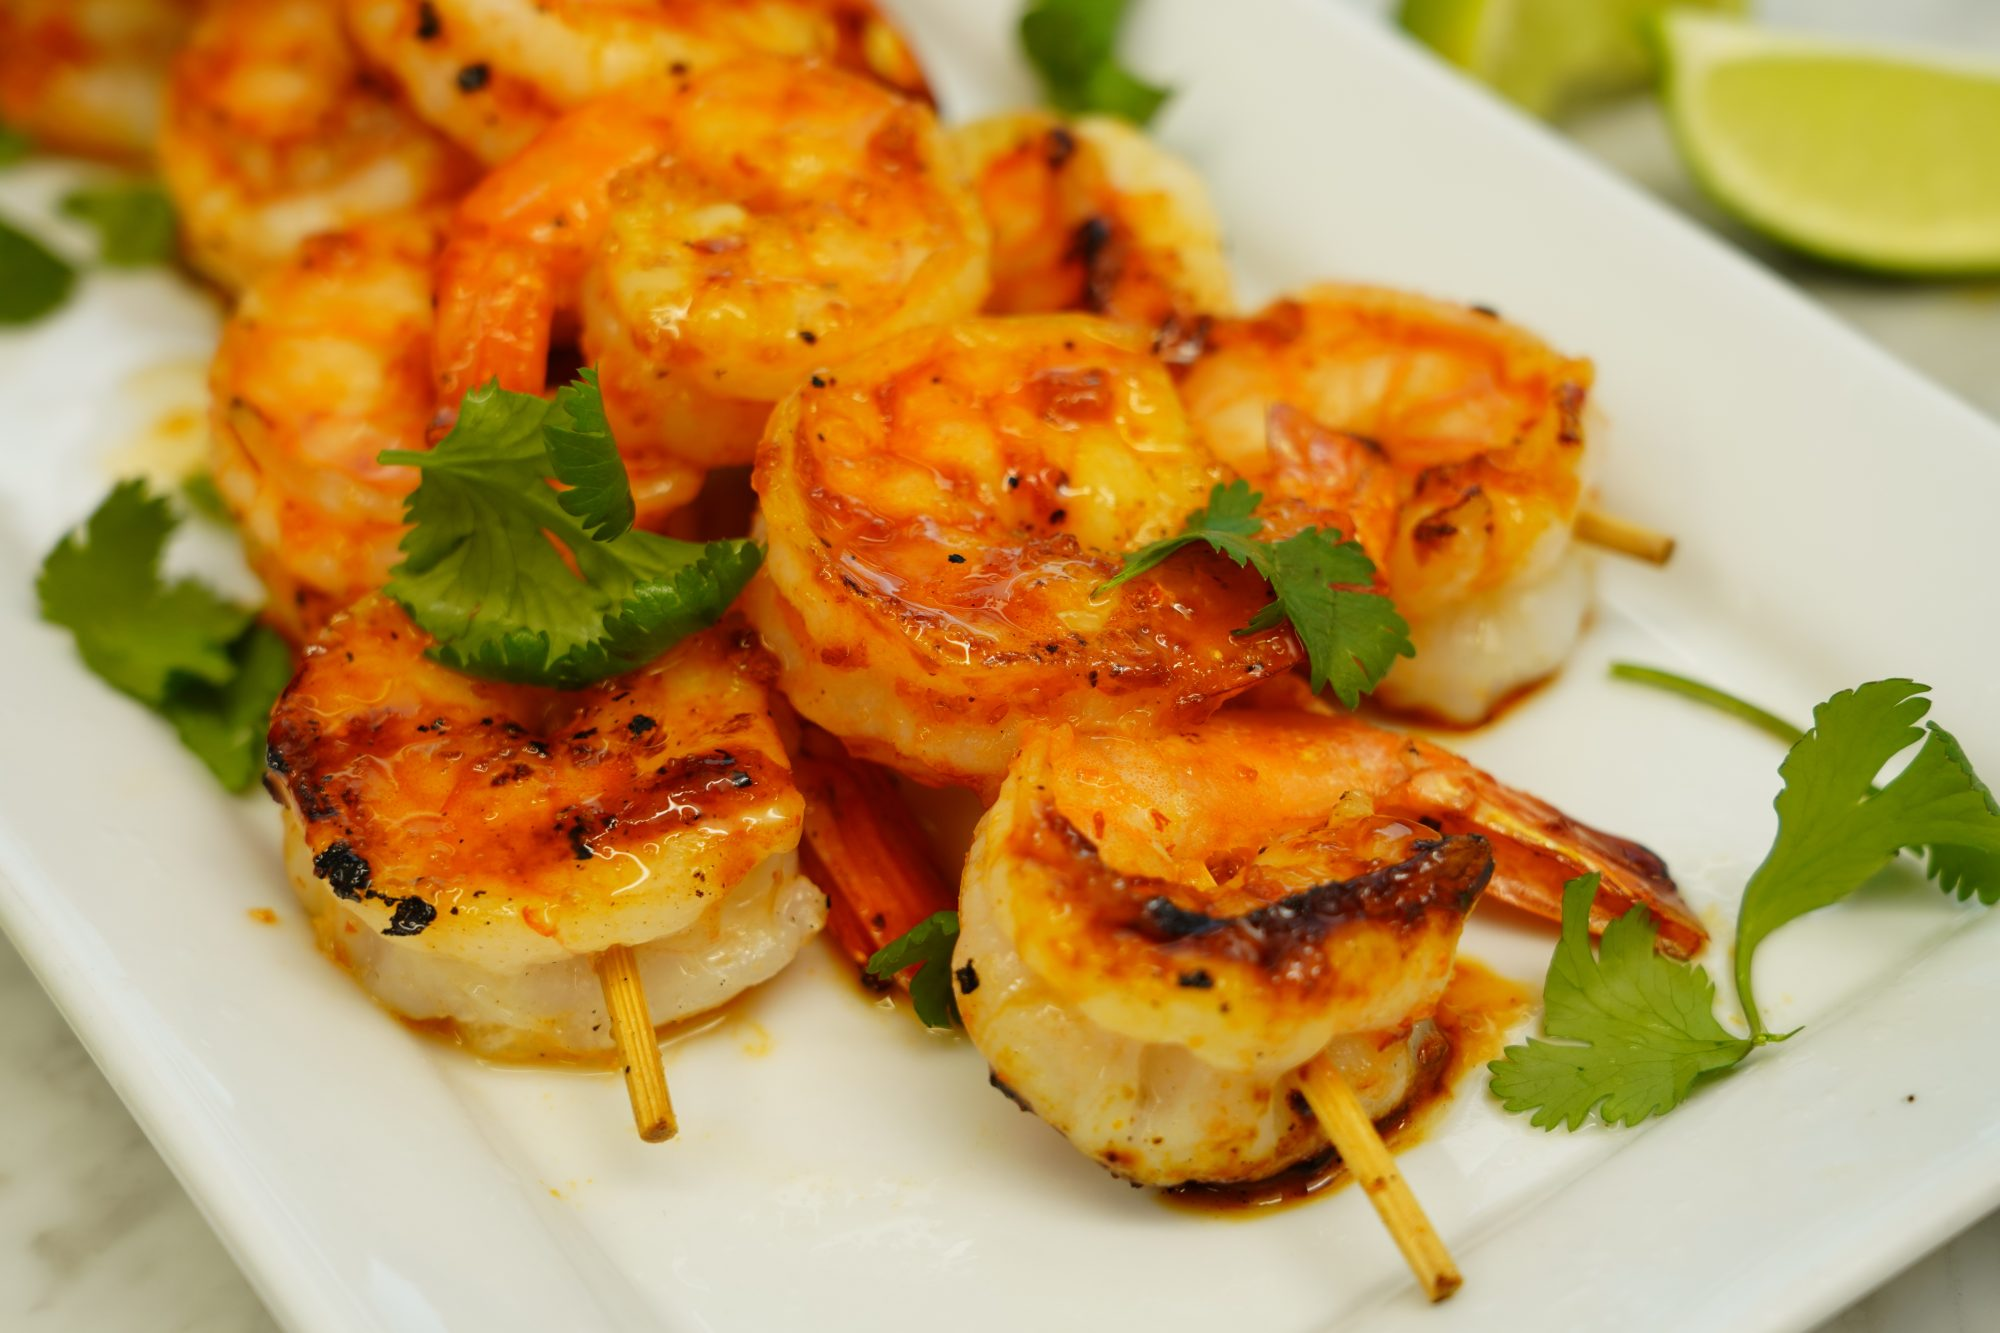 close up of sweet and spicy grilled shrimp threaded on skewers and served on a platter garnished with cilantro